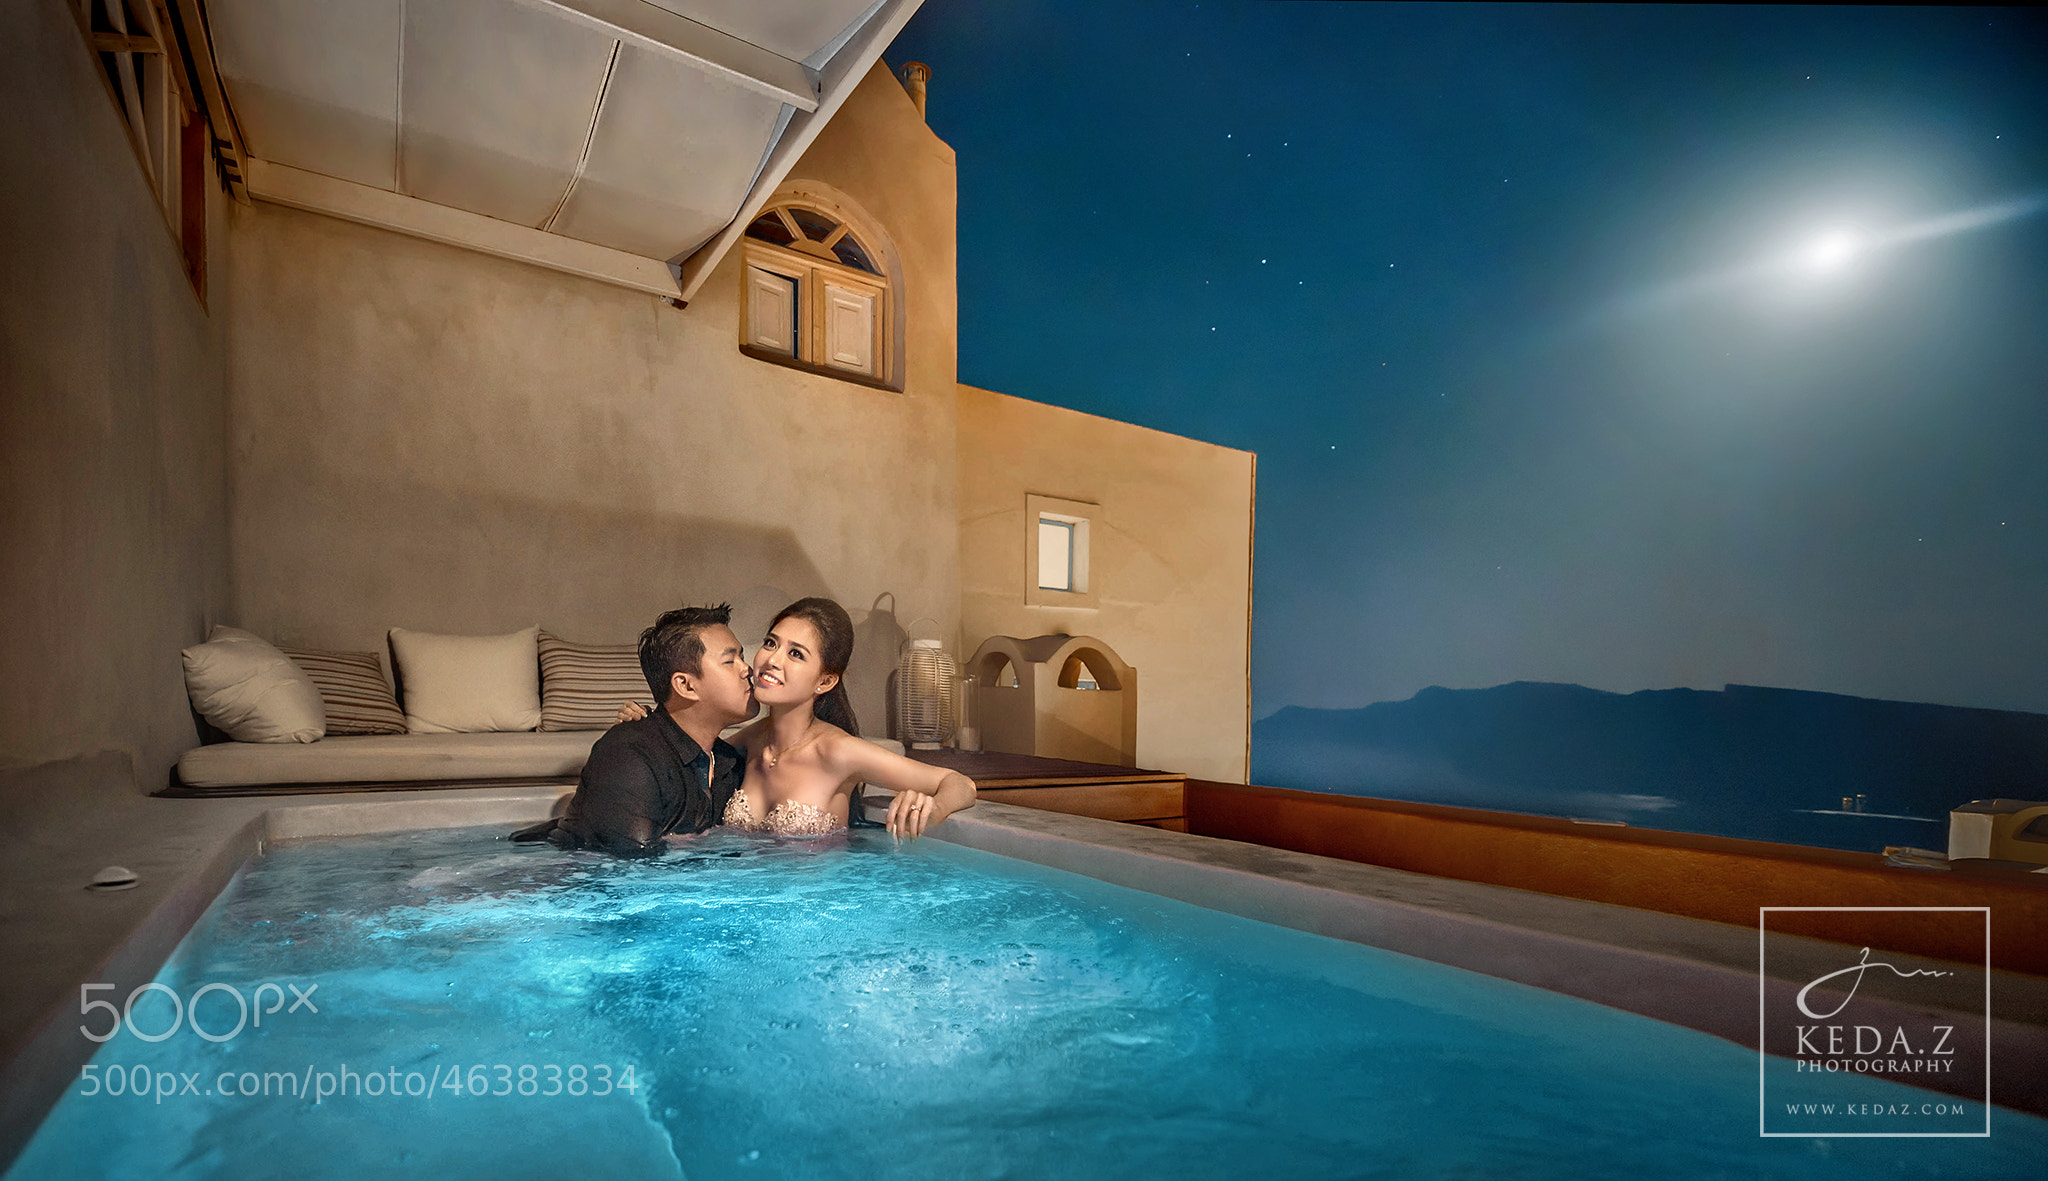 Photograph Romance of Santorini by Keda.Z Feng on 500px